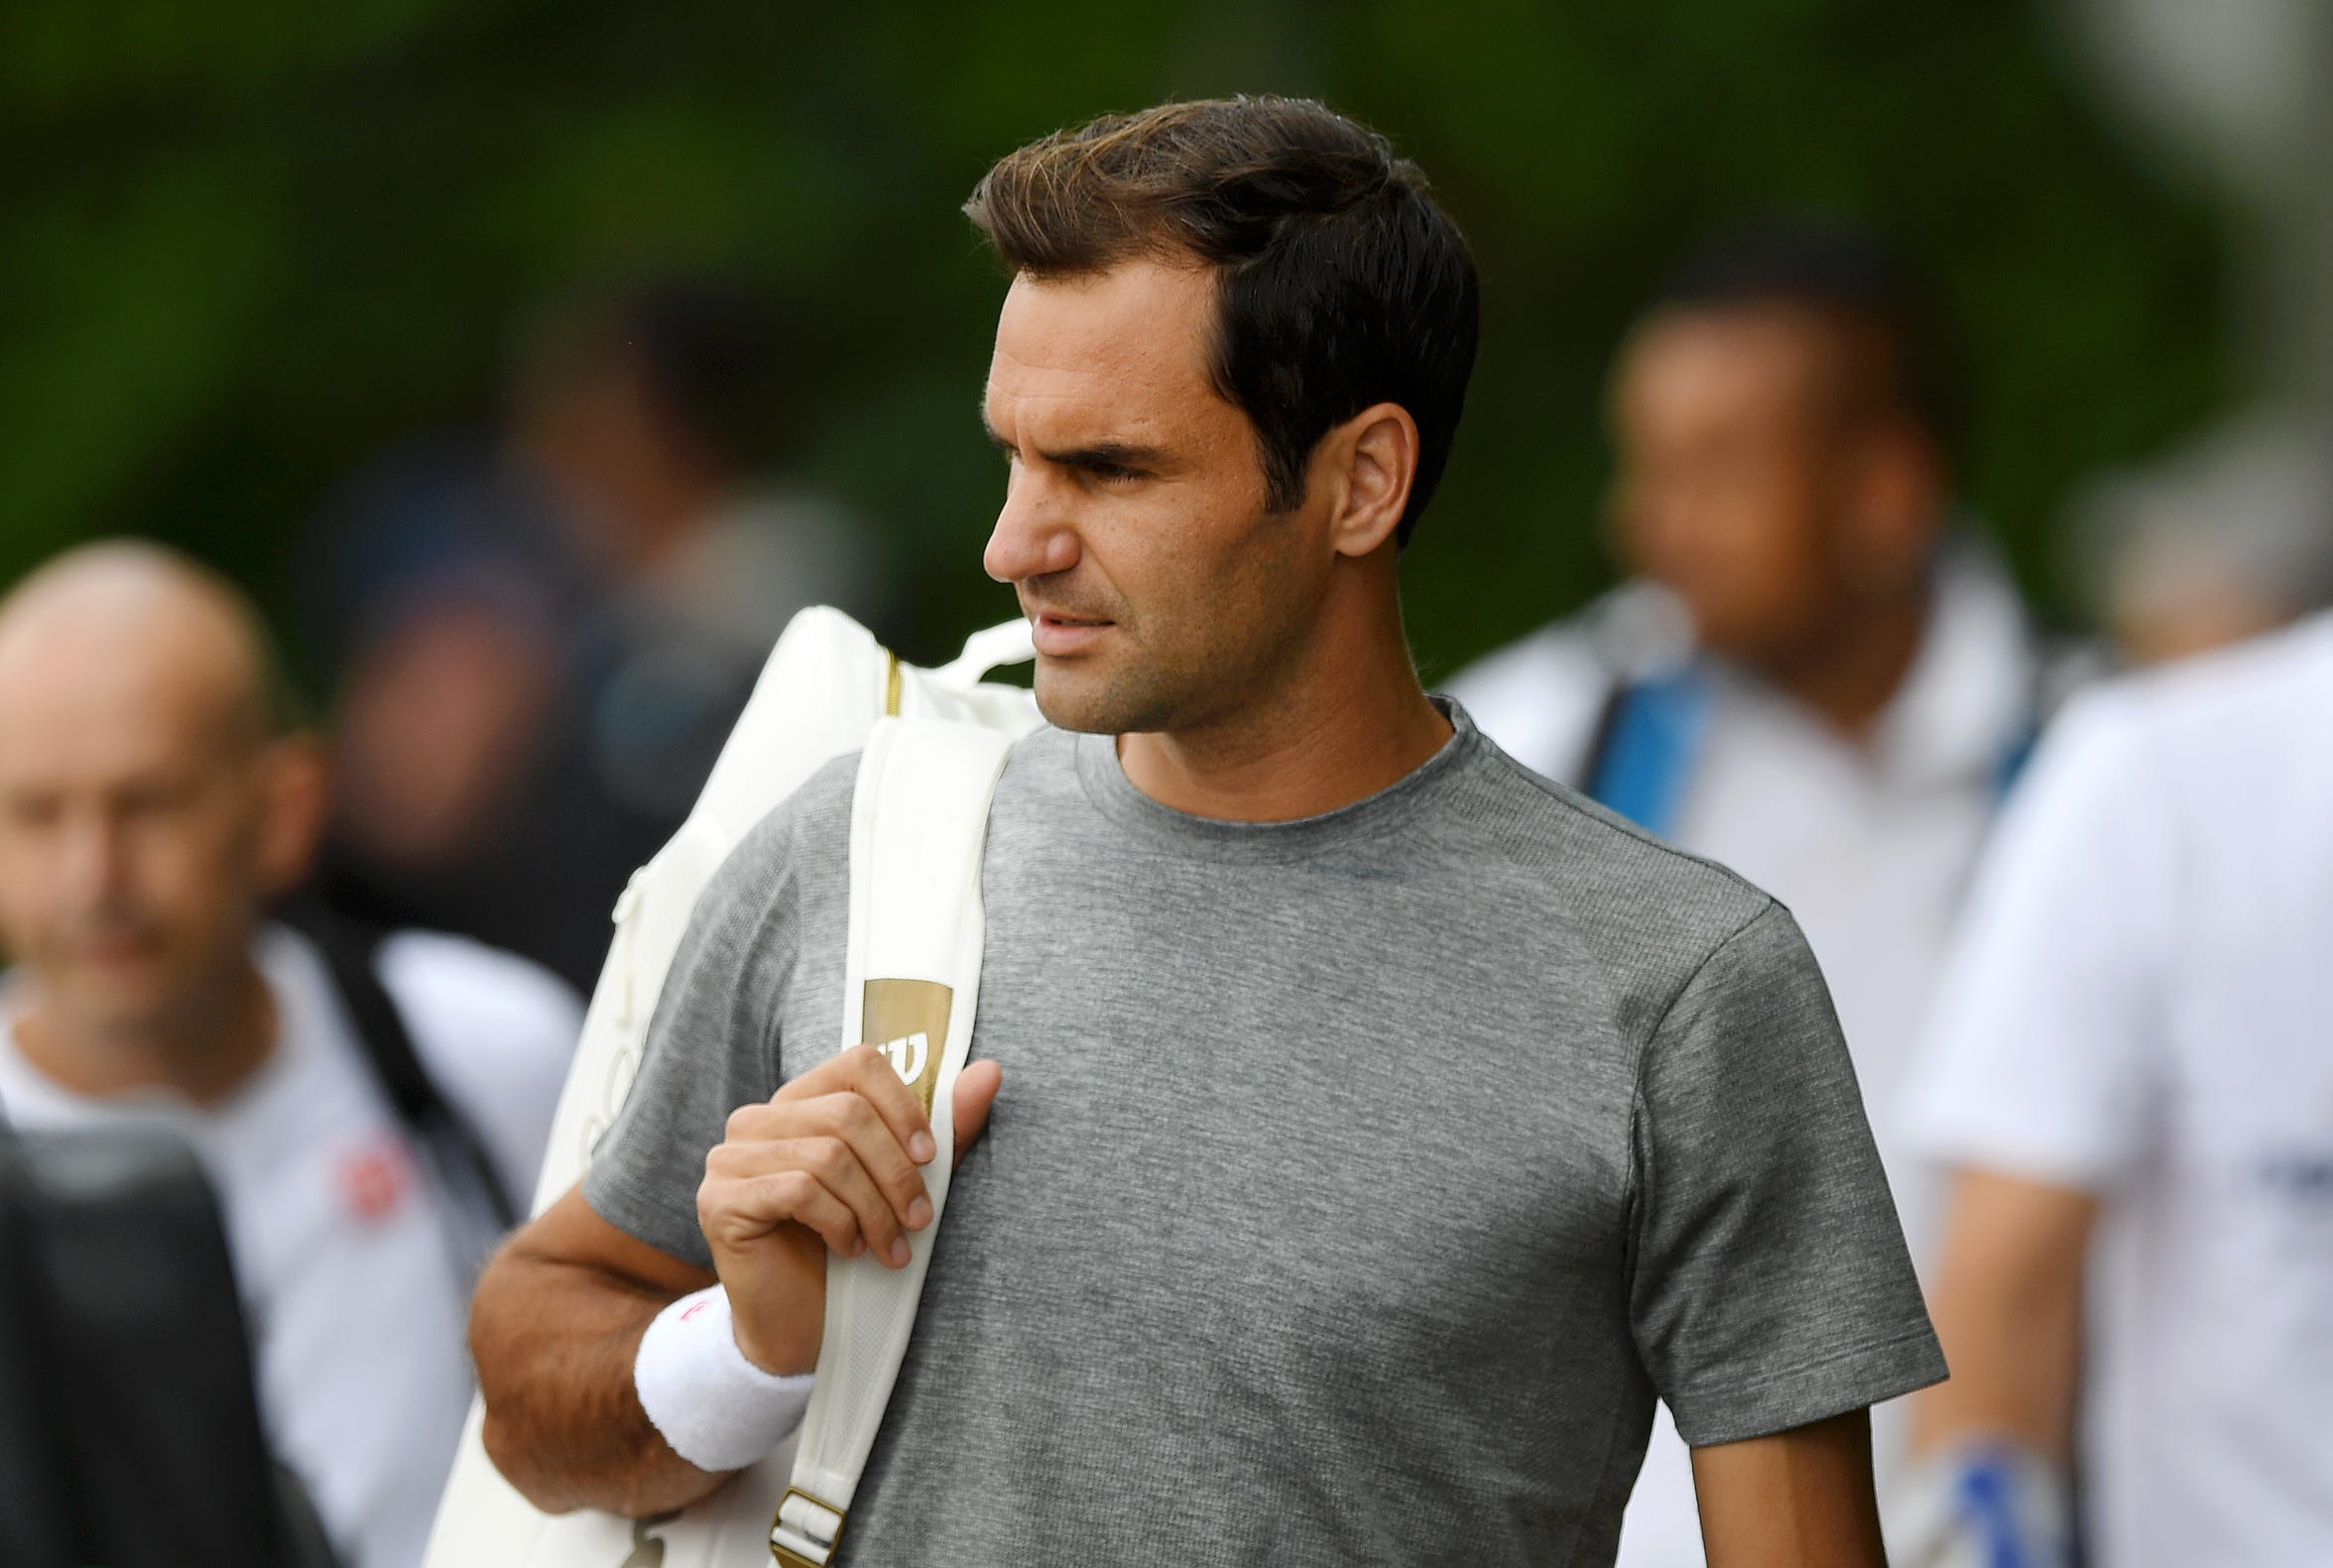 Roger Federer looks on during a practice session ahead of The Championships - Wimbledon 2019 at All England Lawn Tennis and Croquet Club on June 30, 2019 in London, England.